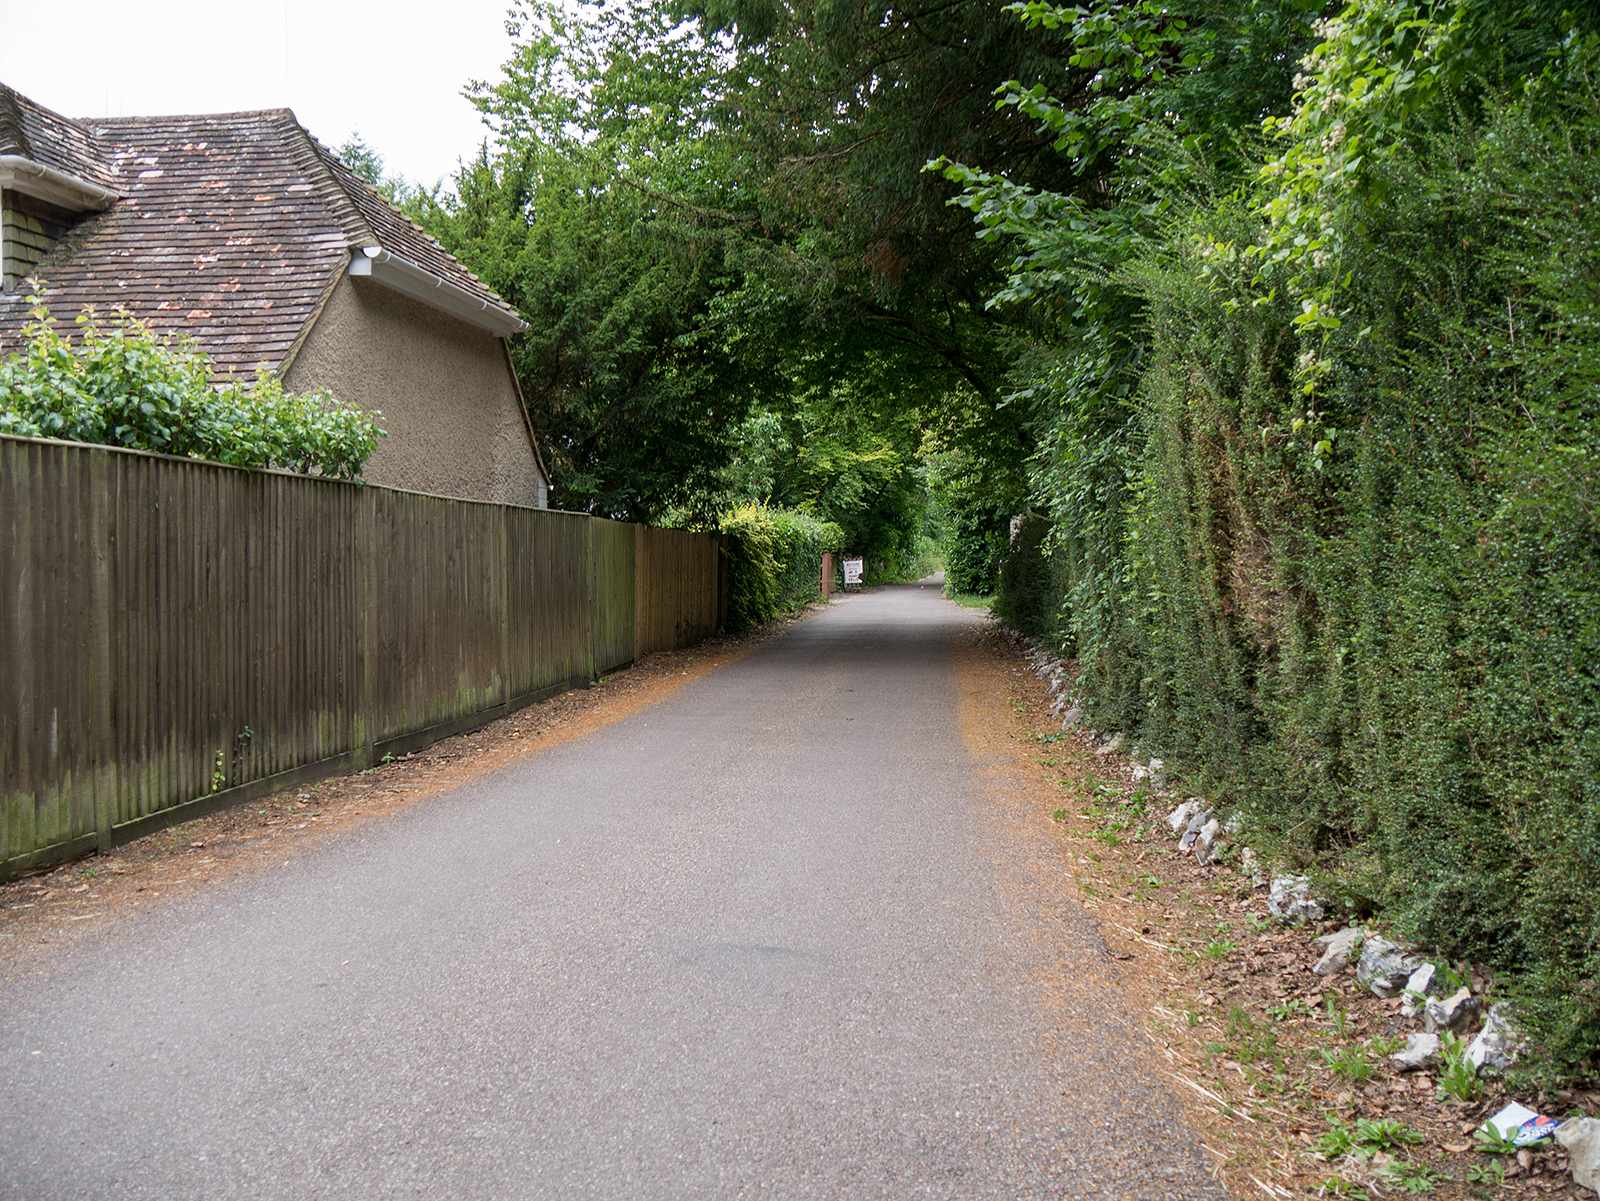 Turning away from the road in Whitchurch to head west along the metallized bridleway